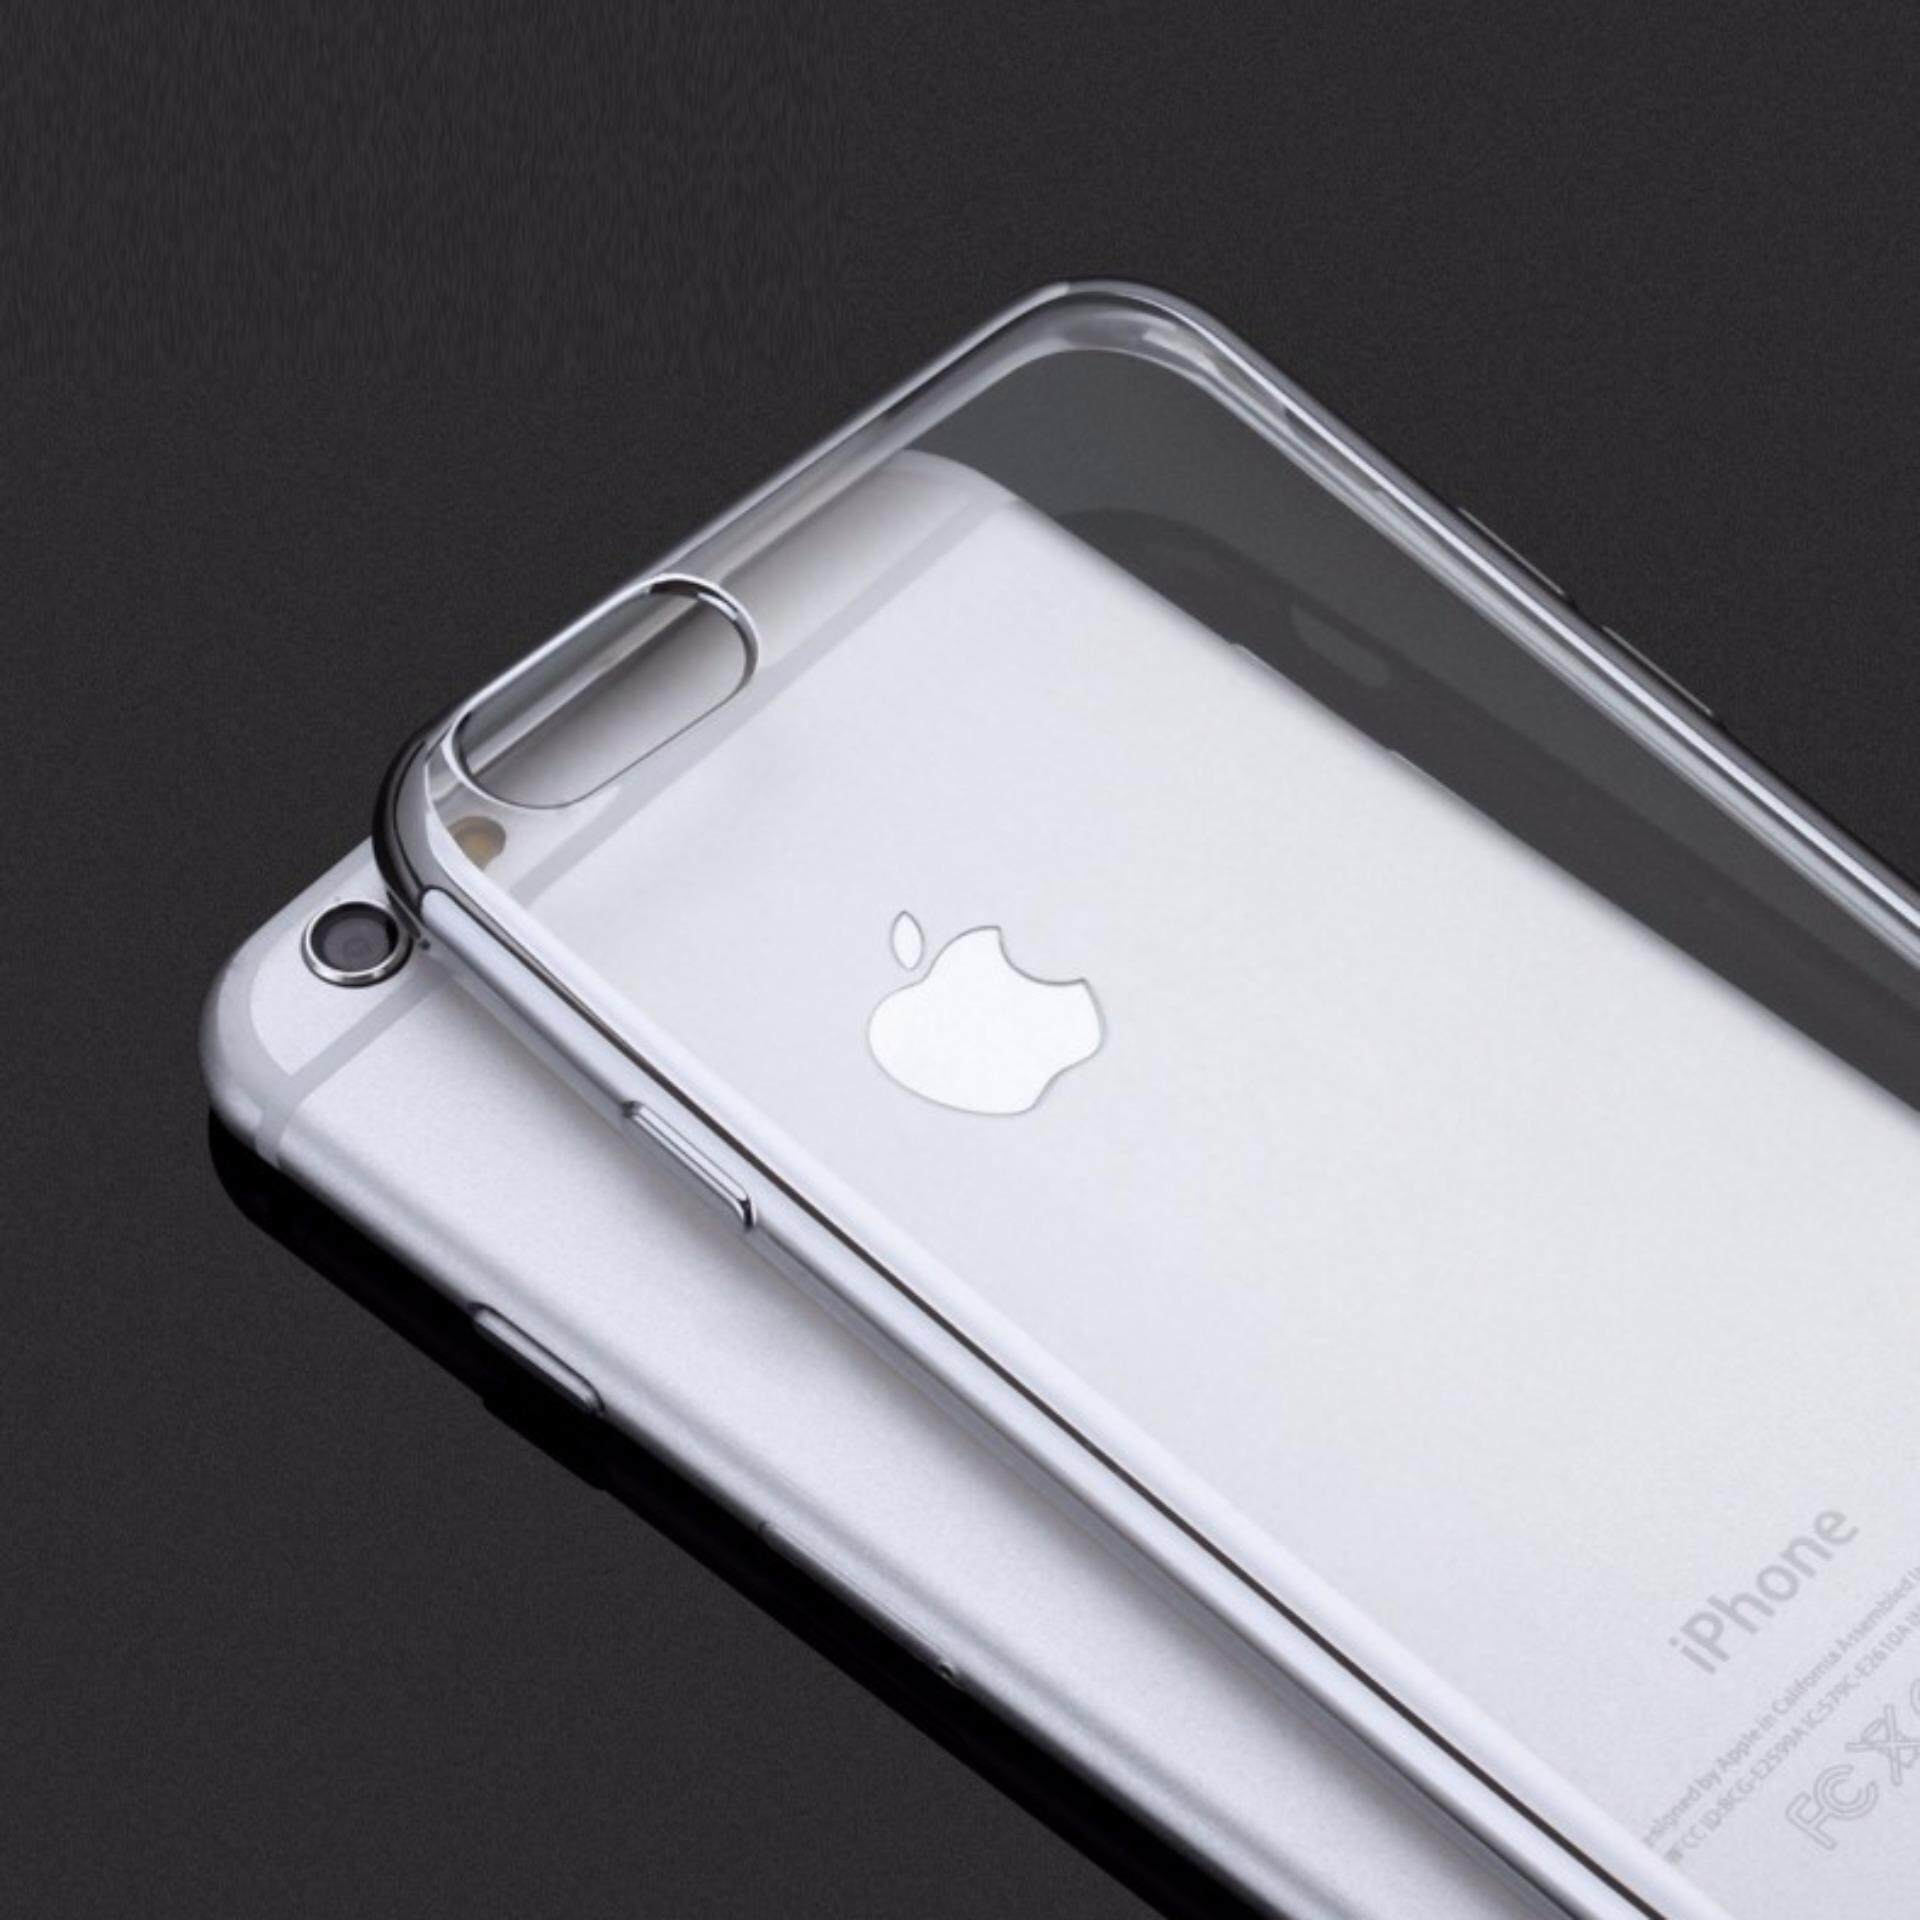 factory price 43460 66f54 ViLi Apple iPhone 6 Plus 6s Plus TPU Silicone Ultrathin Luxury Slim  Electroplating Crystal Clear Transparent Soft Back Cover Case Covers  (Silver) FREE ...